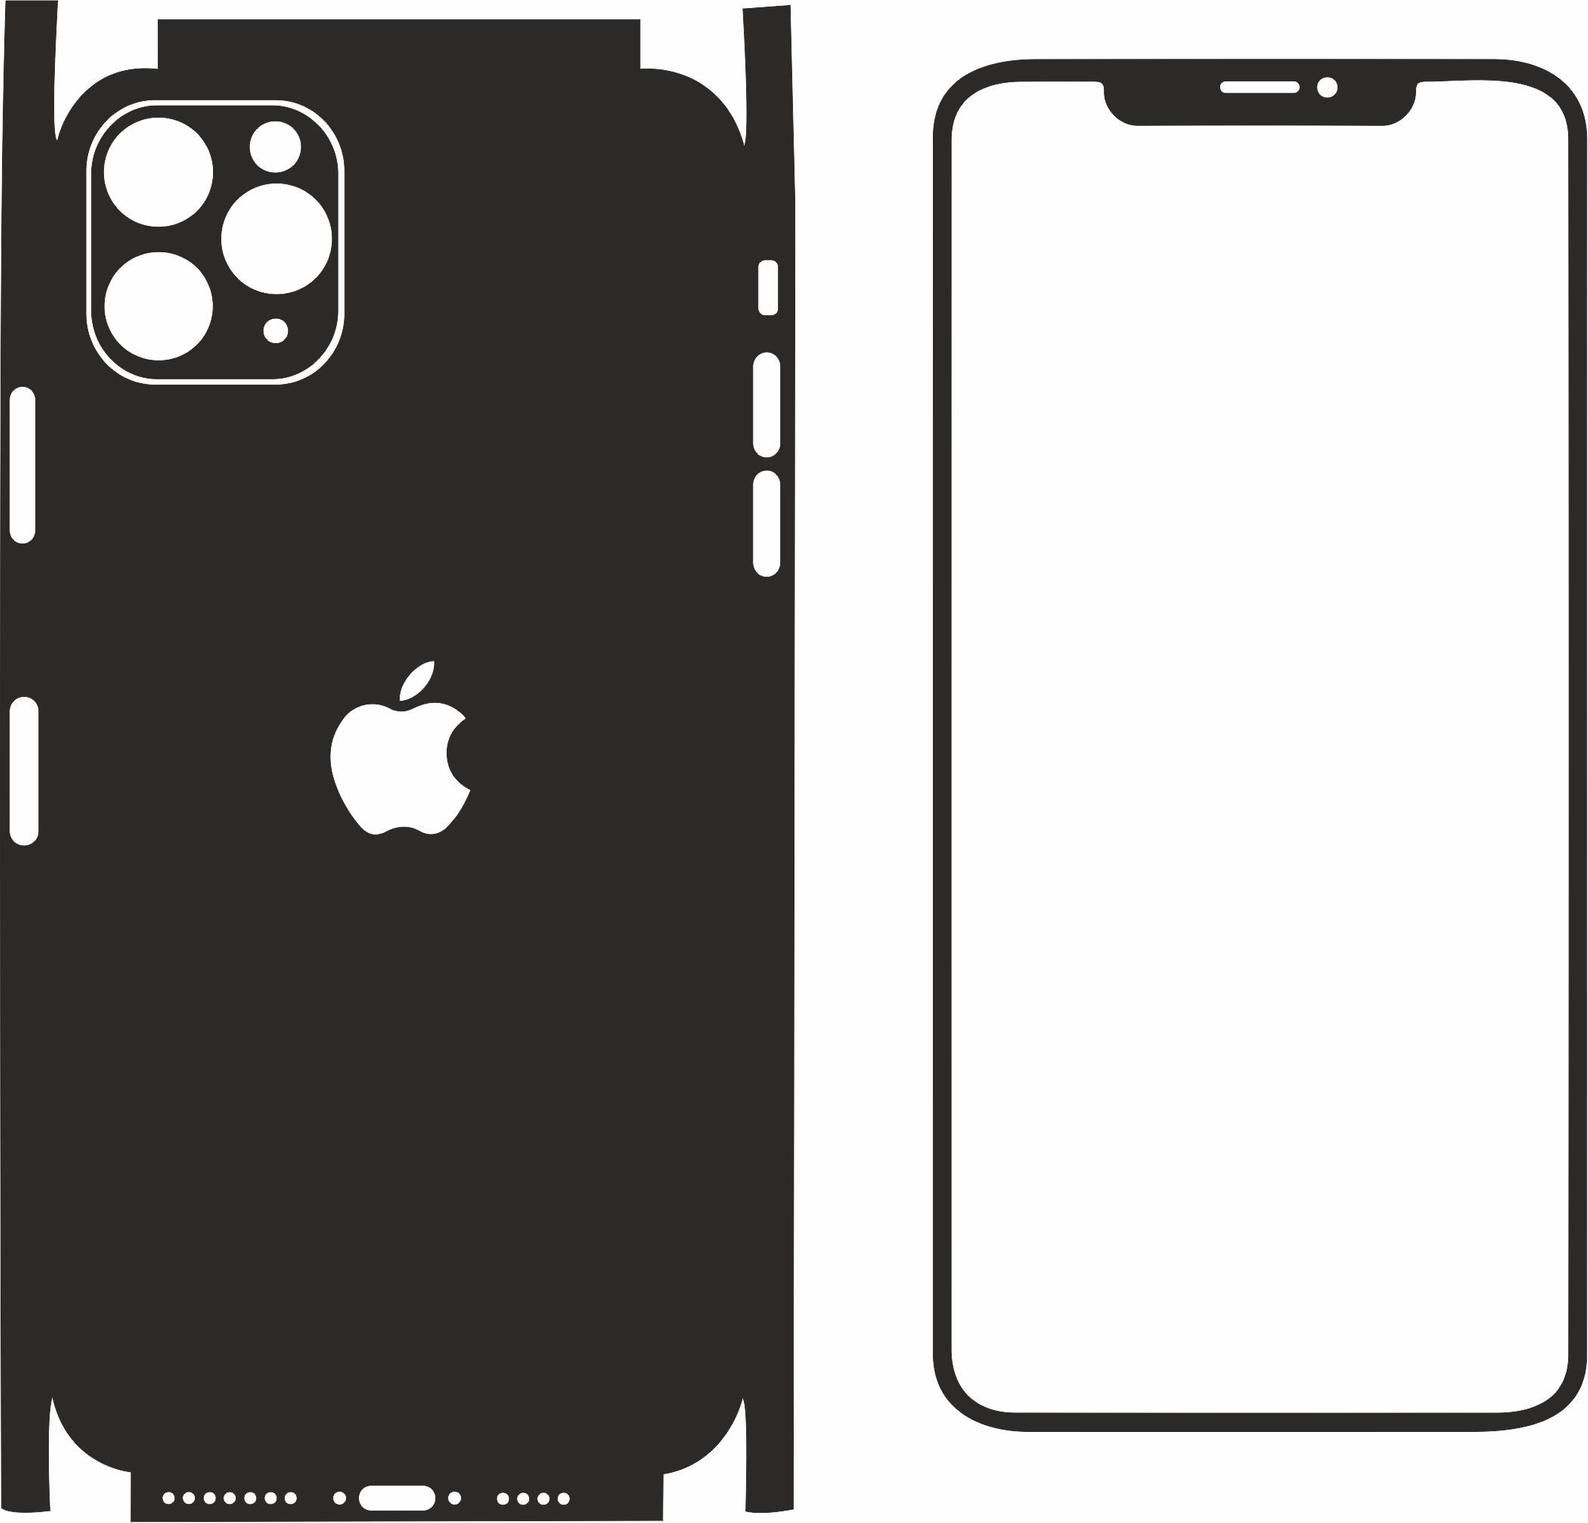 Iphone 11 Pro Max Pdf Svg Dxf Eps Ai Cdr Format Vector Etsy Iphone Iphone 11 Cell Phone Cases